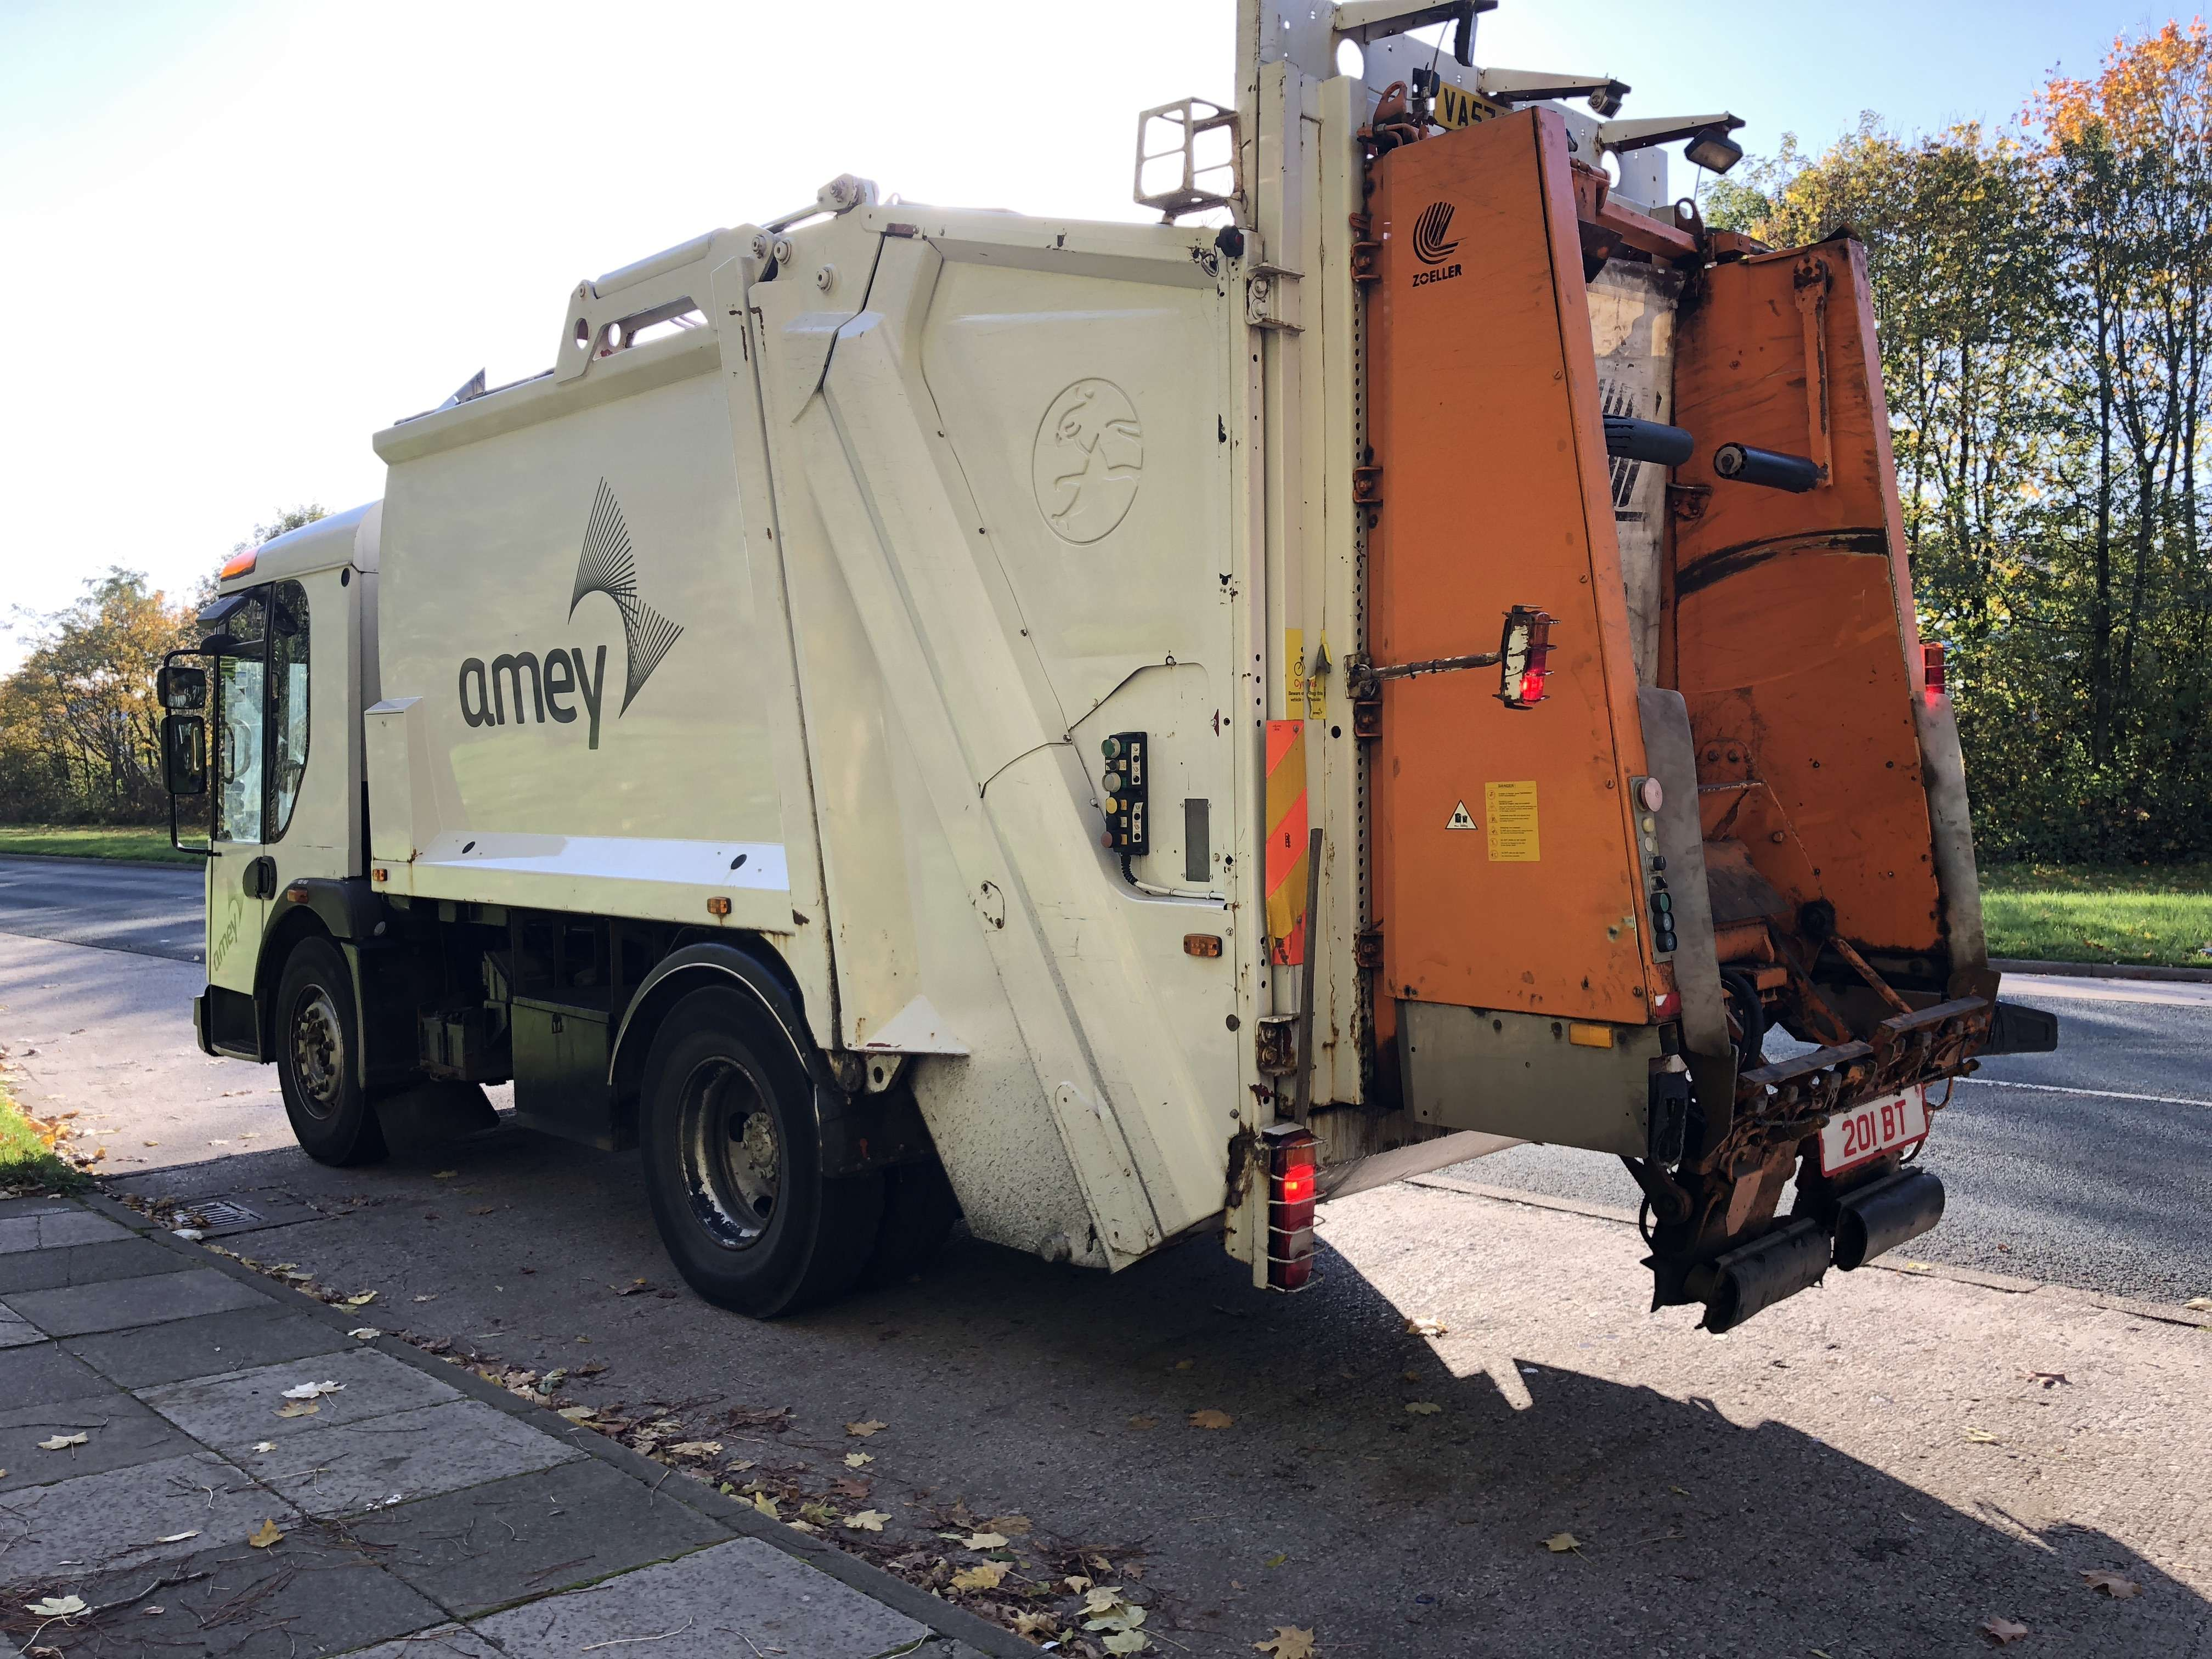 2008 Dennis 4x2 narrow track refuse collection truck for sale 4